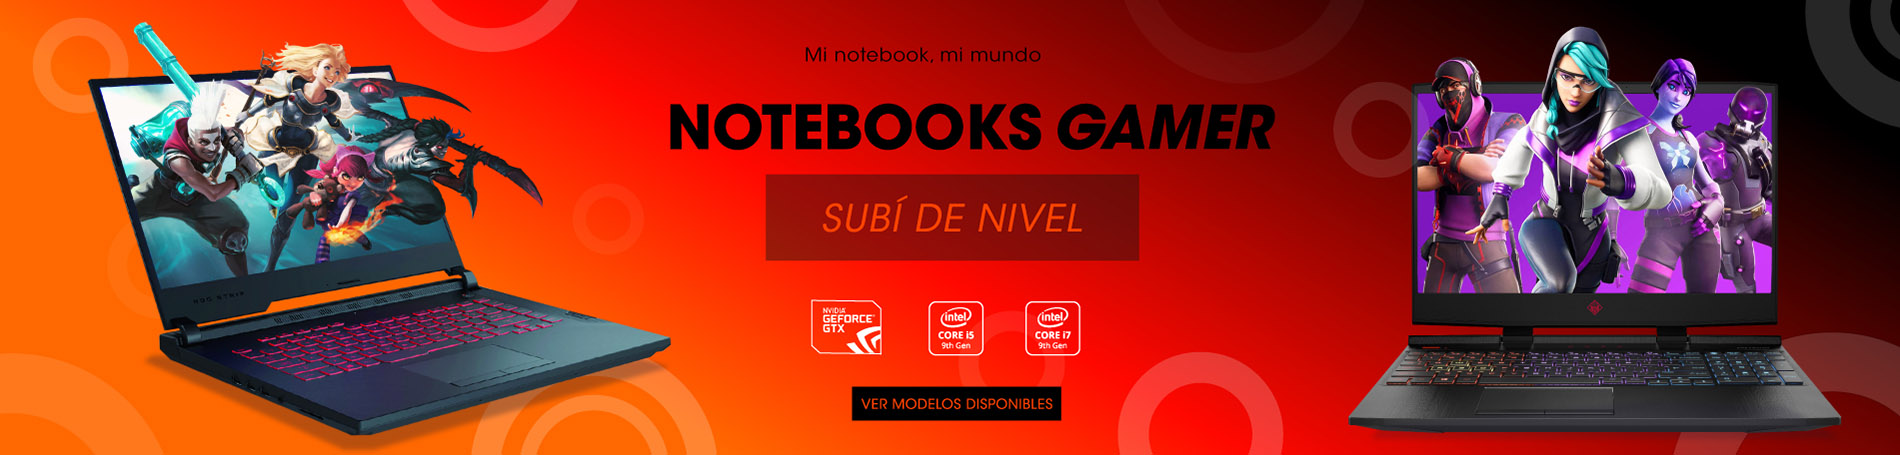 Notebooks Gamer